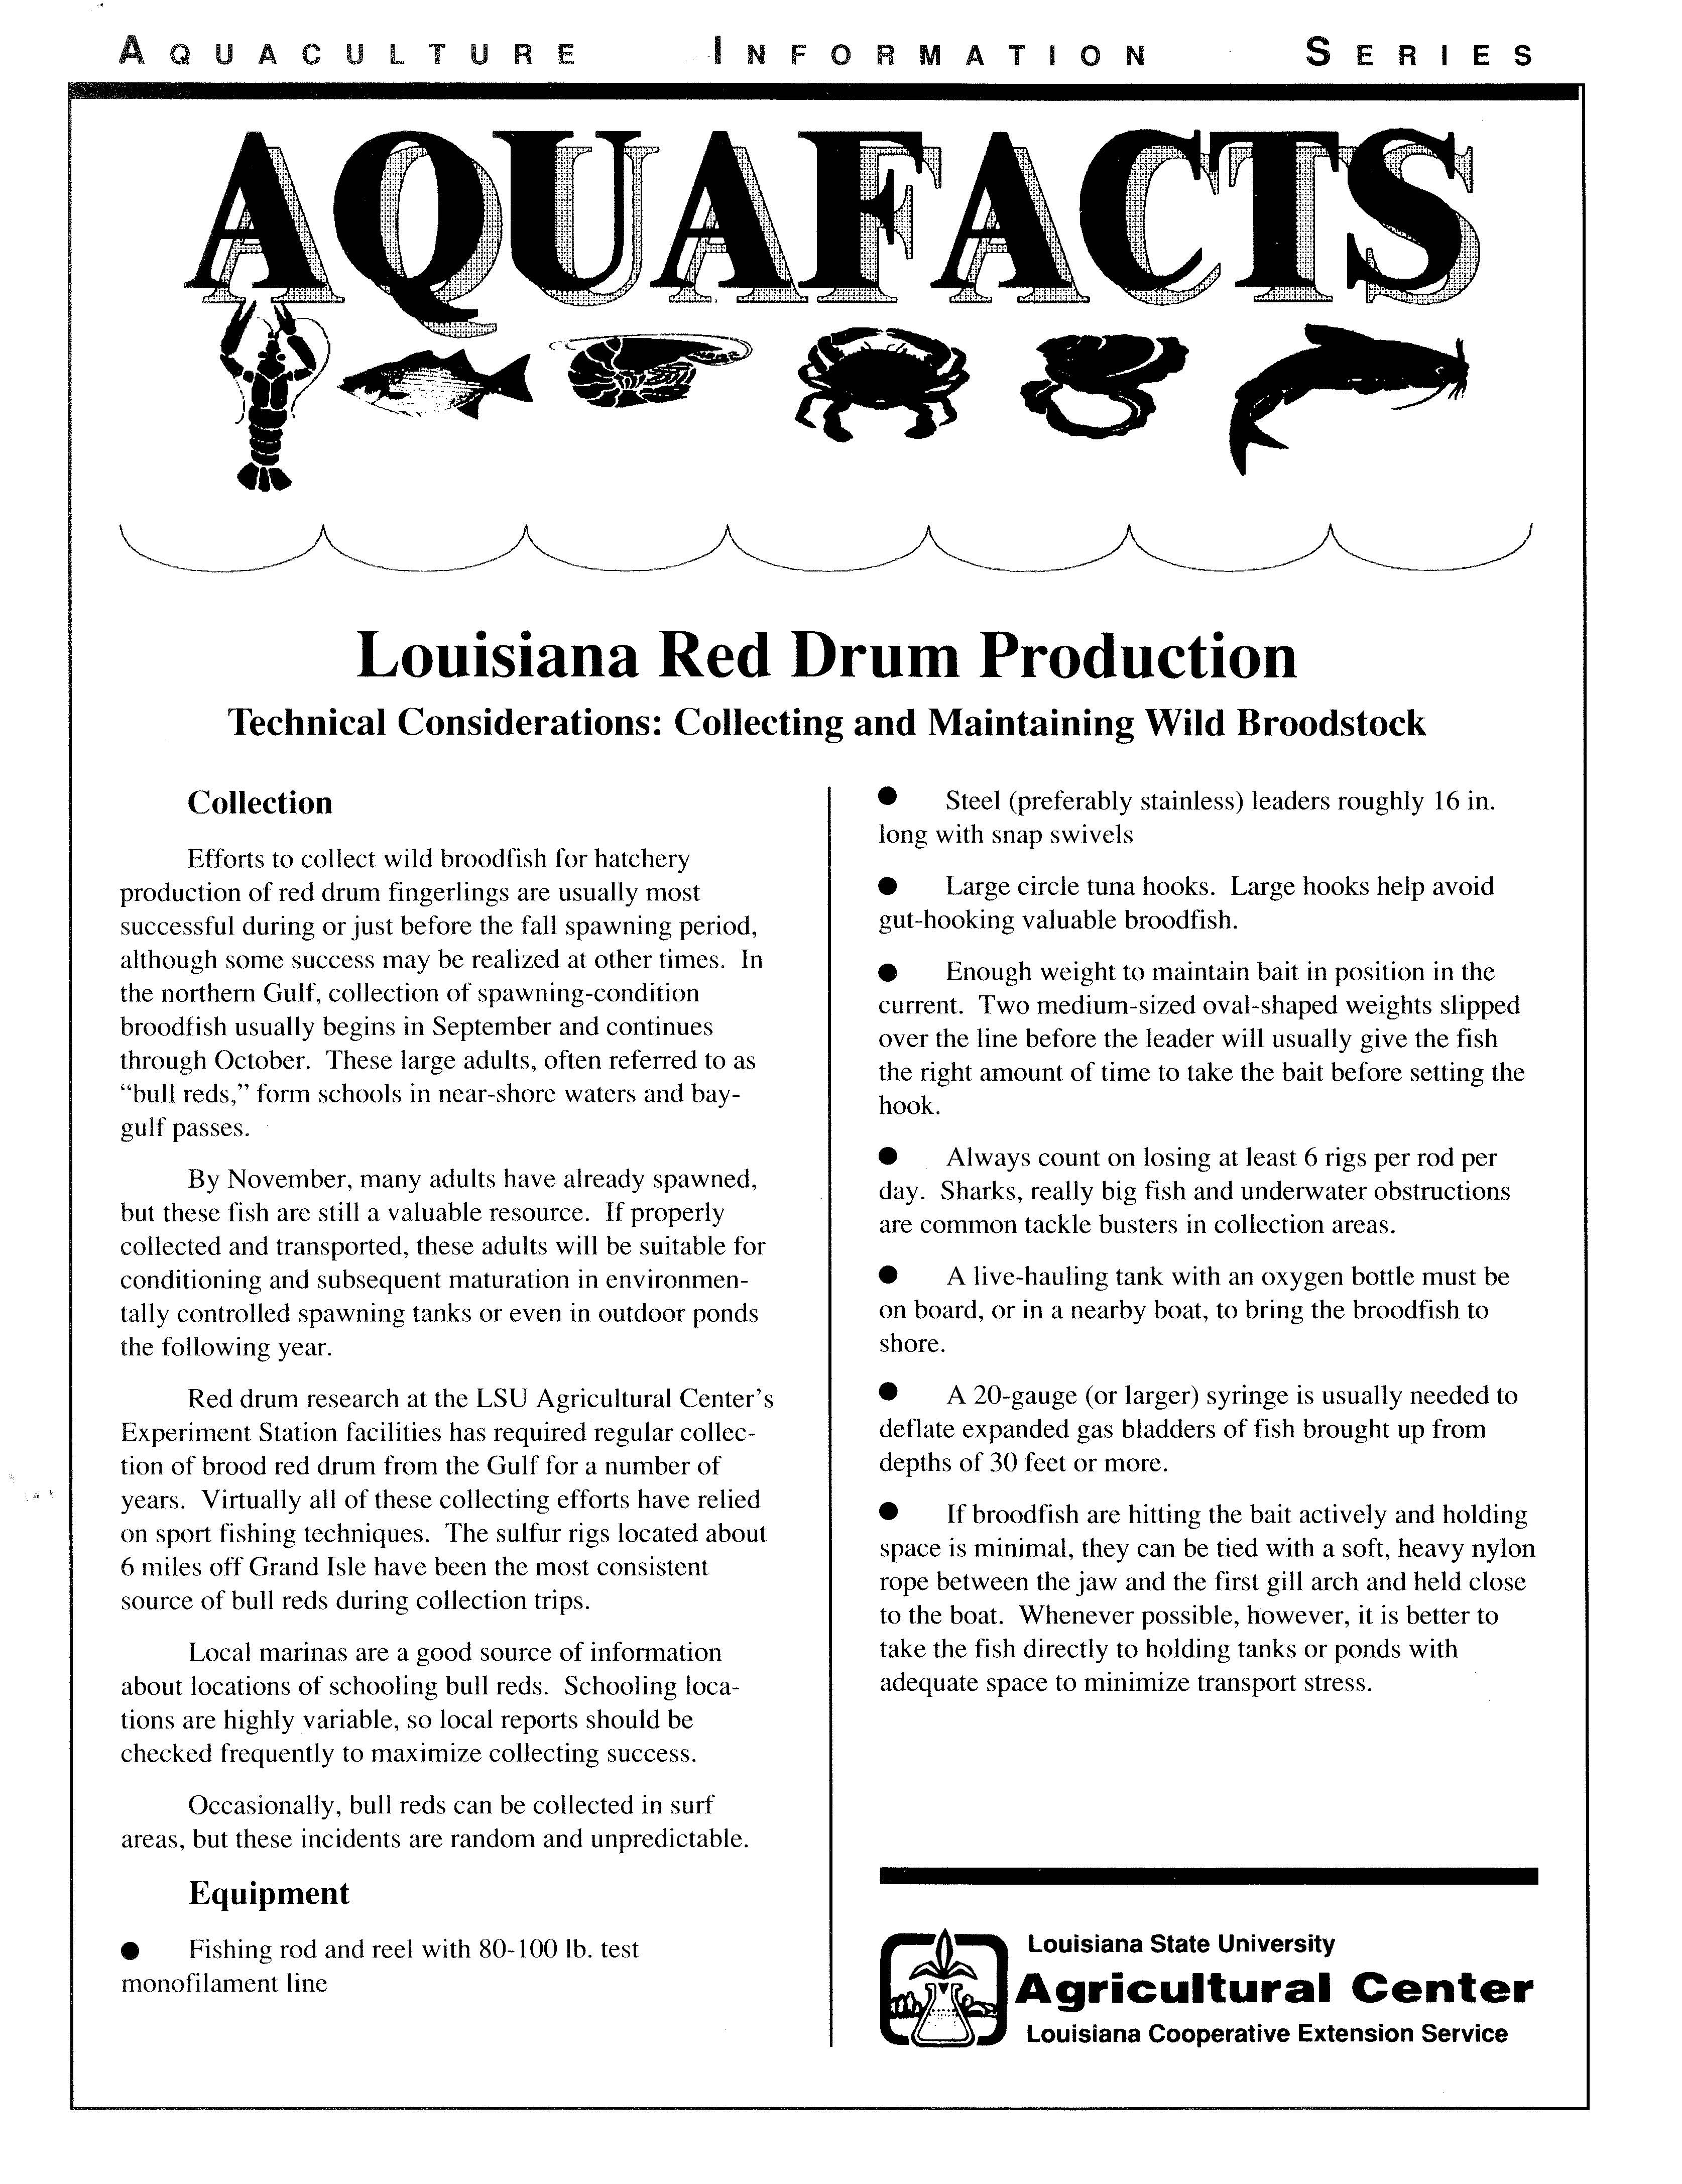 Red Drum Production: Collecting and Maintaining Wild Broodstock